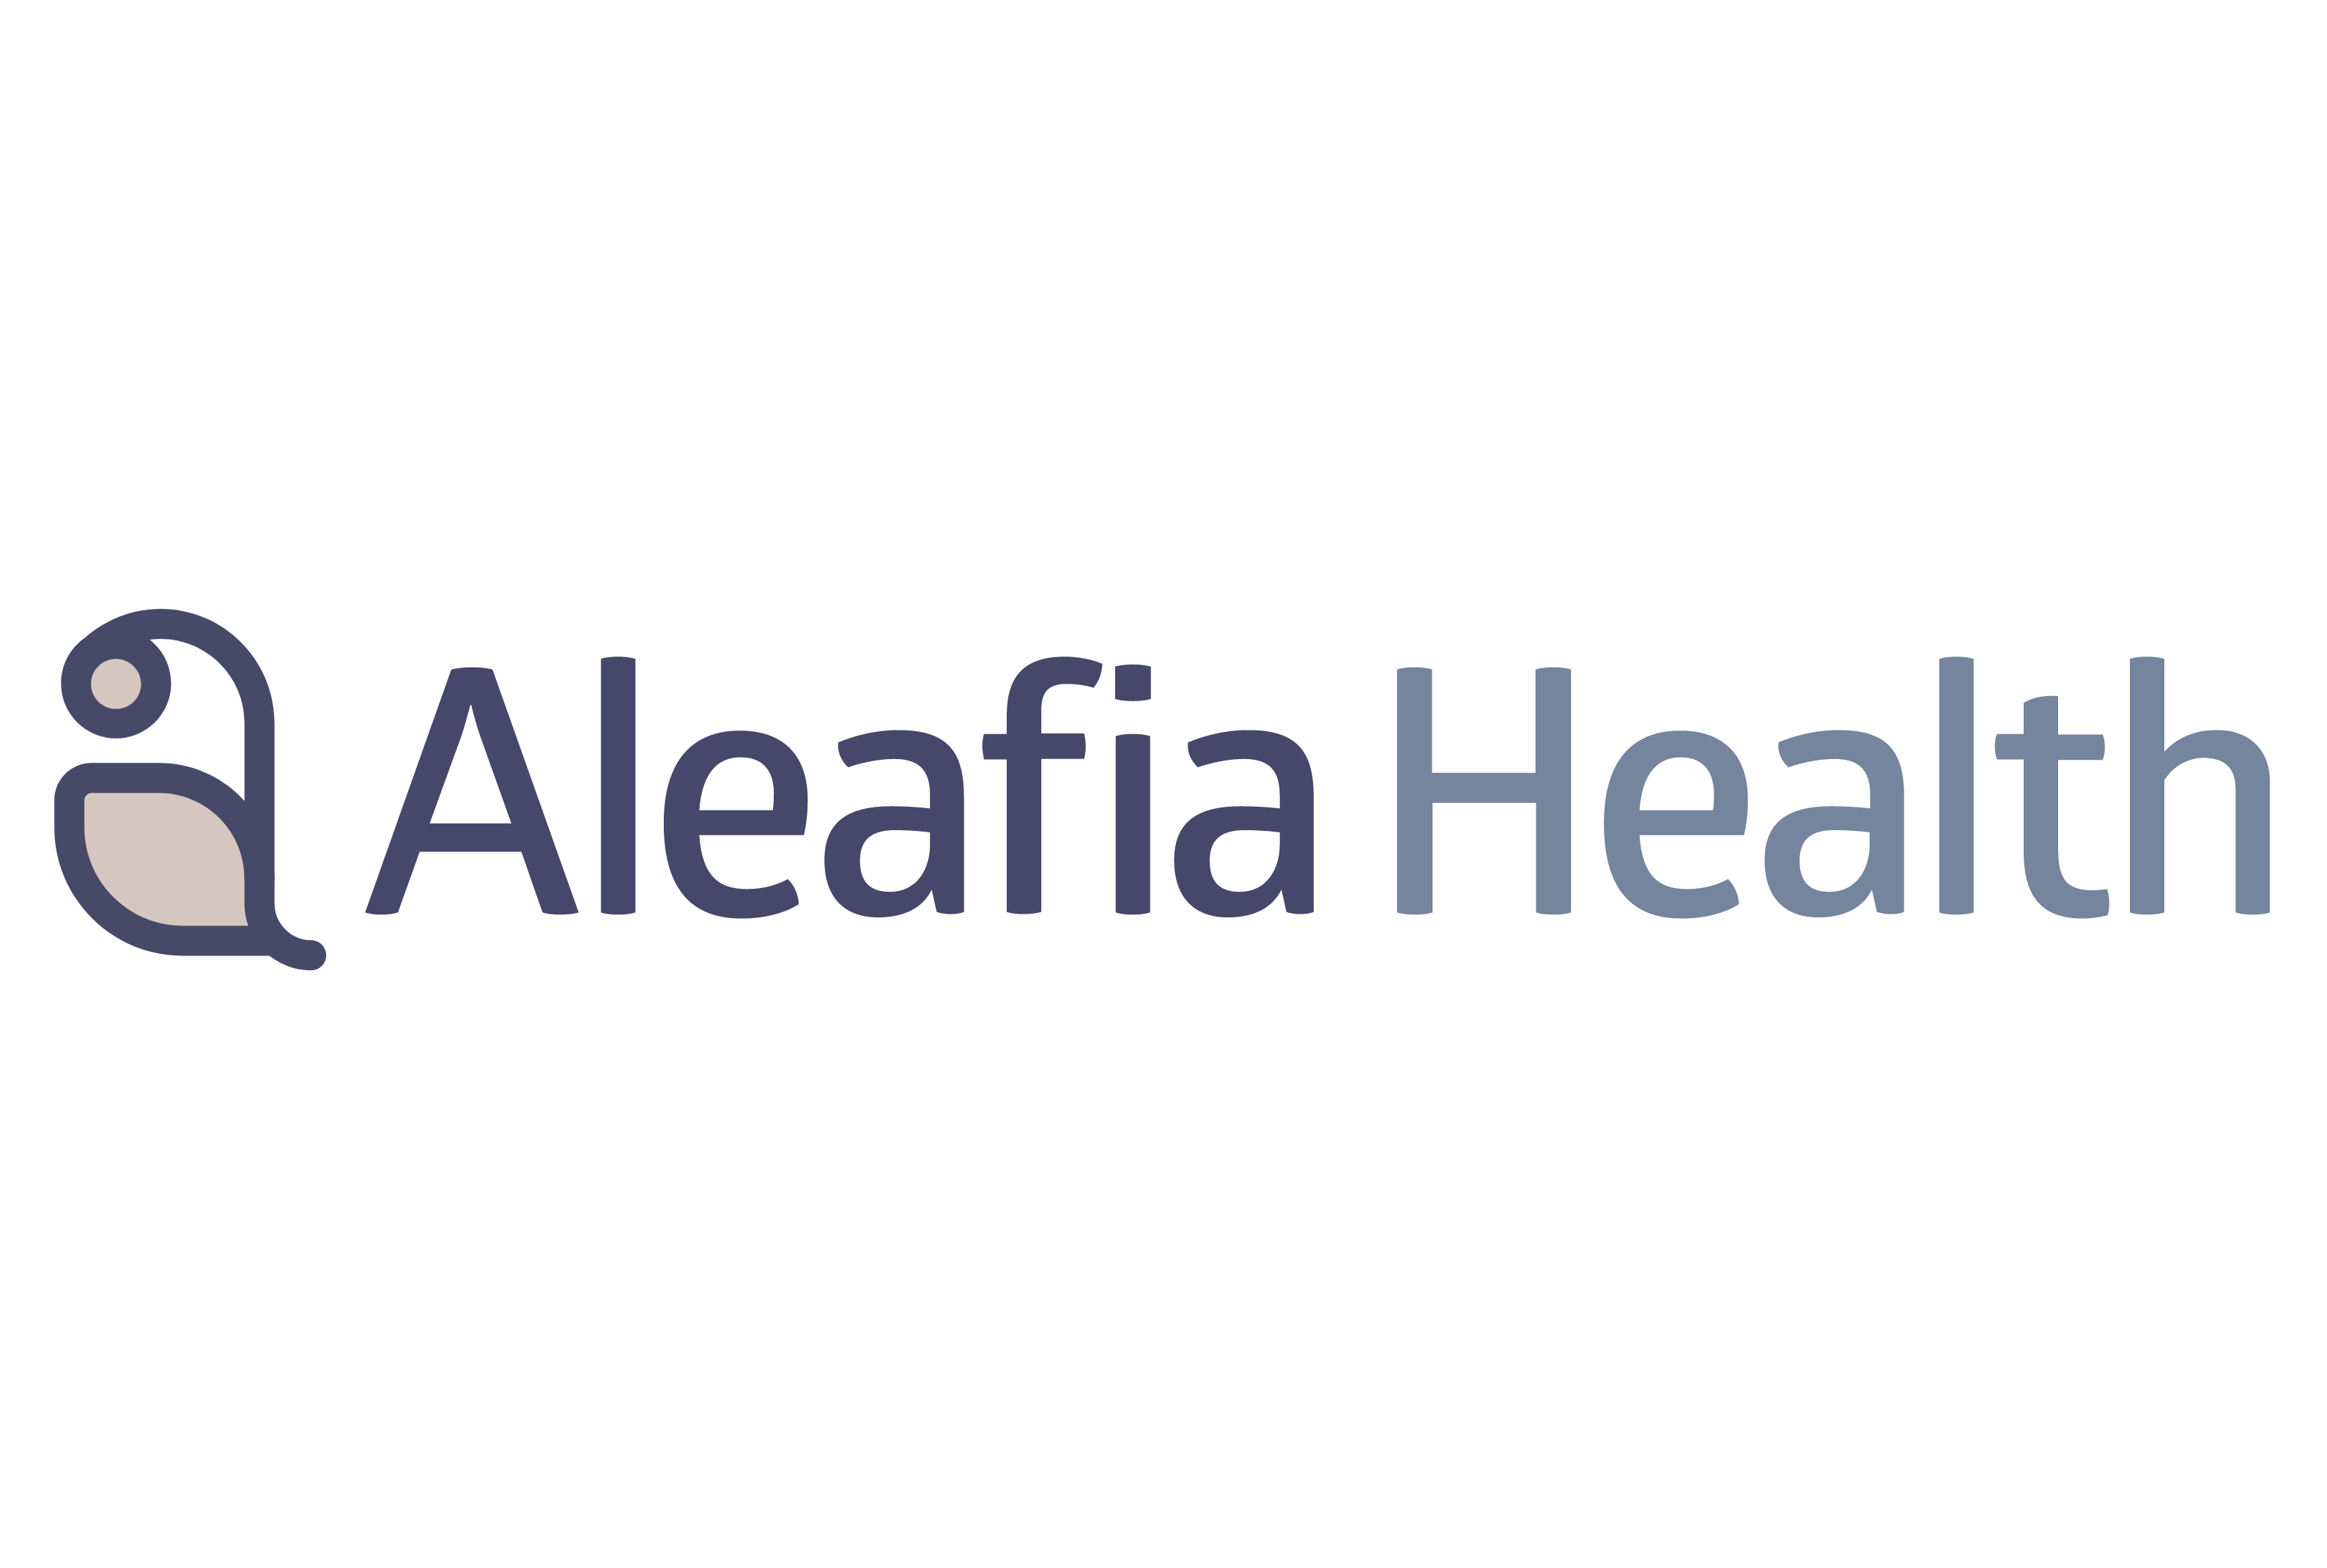 Aleafia Health Launches Same-Day, Direct-to-Door Medical Cannabis Delivery